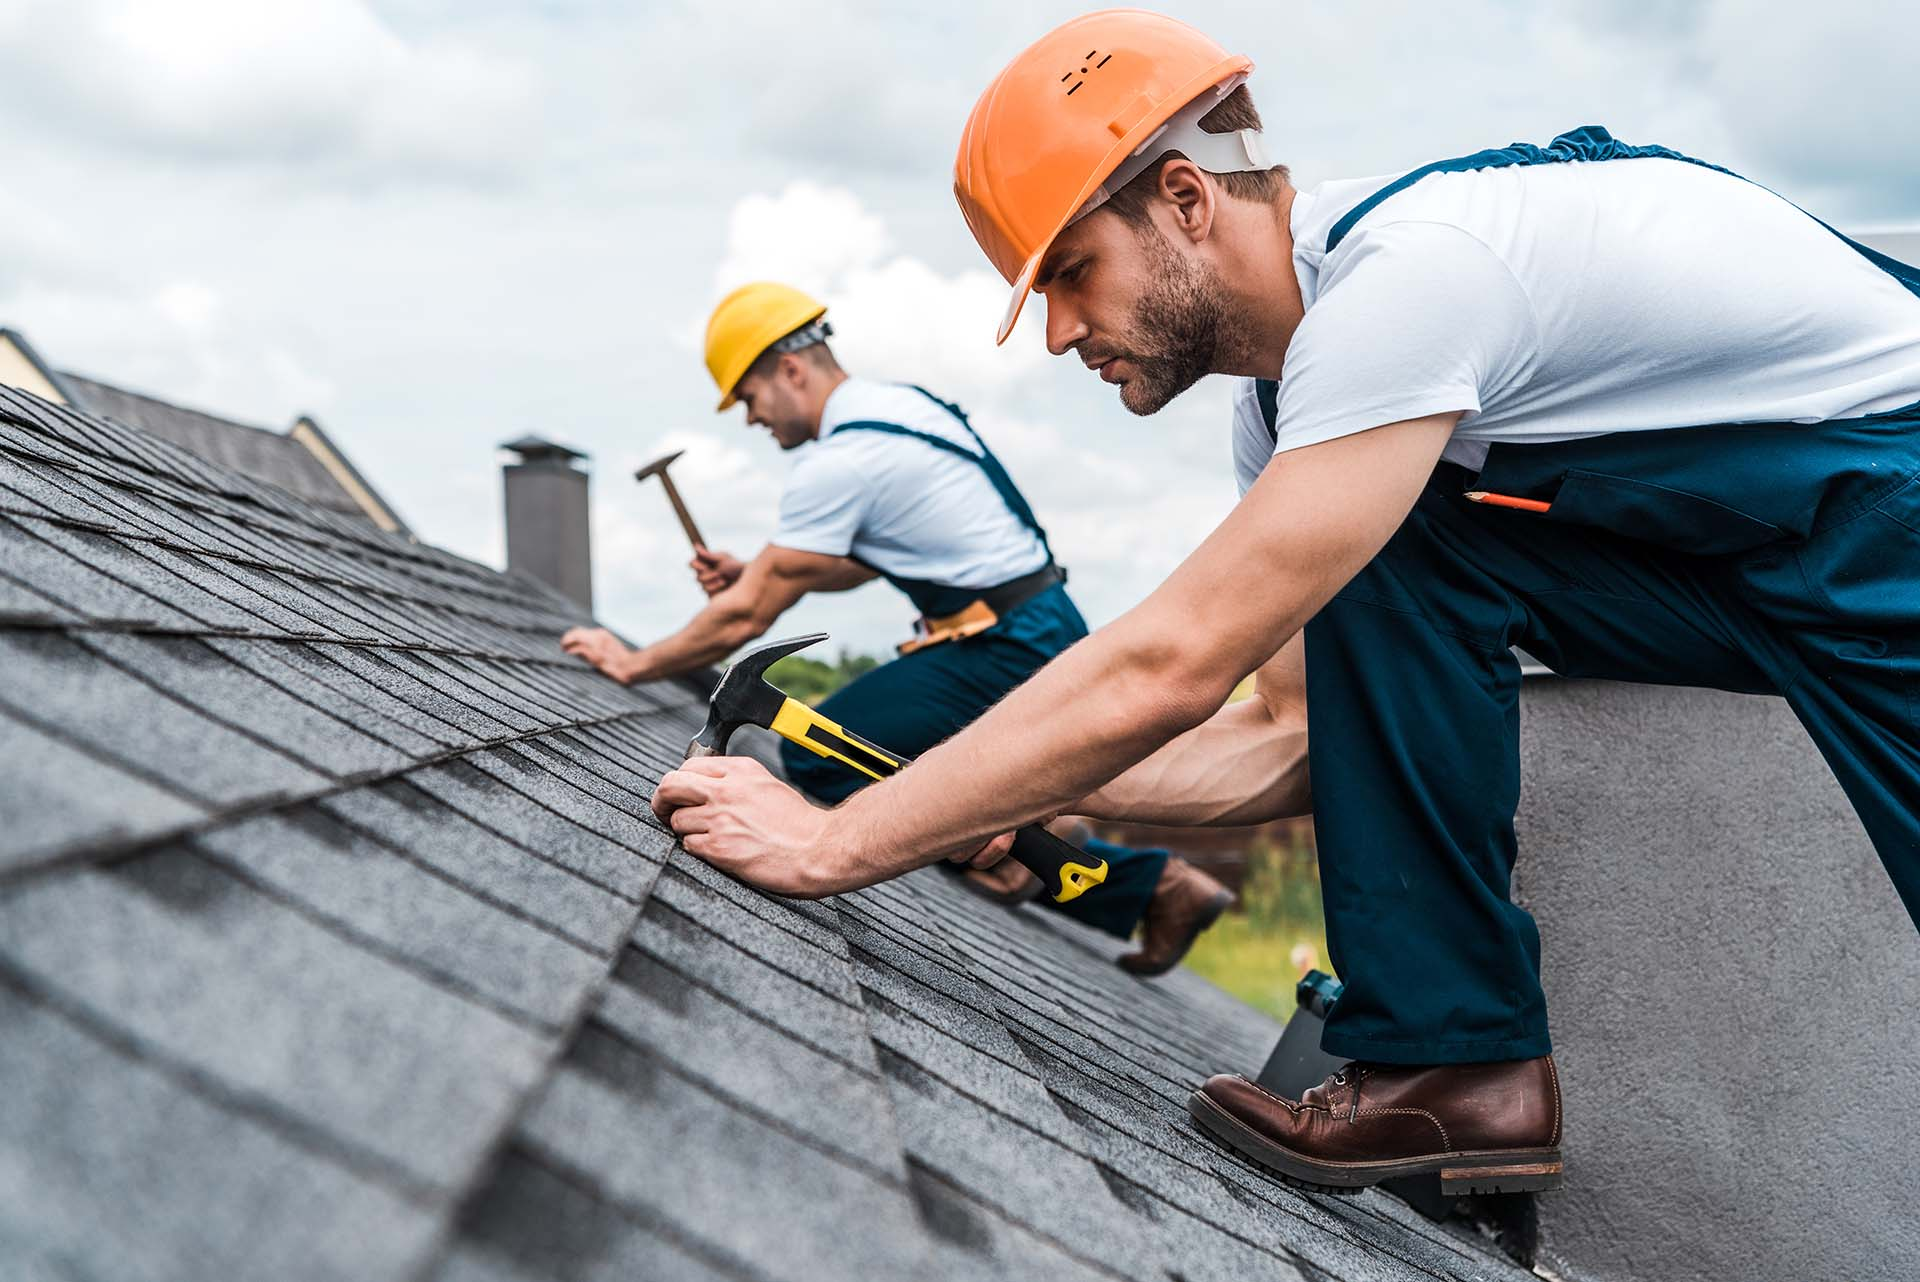 When should you repair a roof?